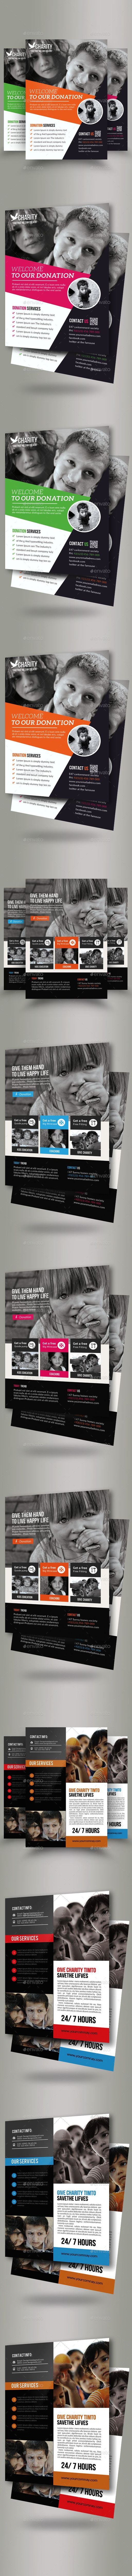 Charity & Donation Flyer Bundle | Business flyers, Fonts and Flyer ...